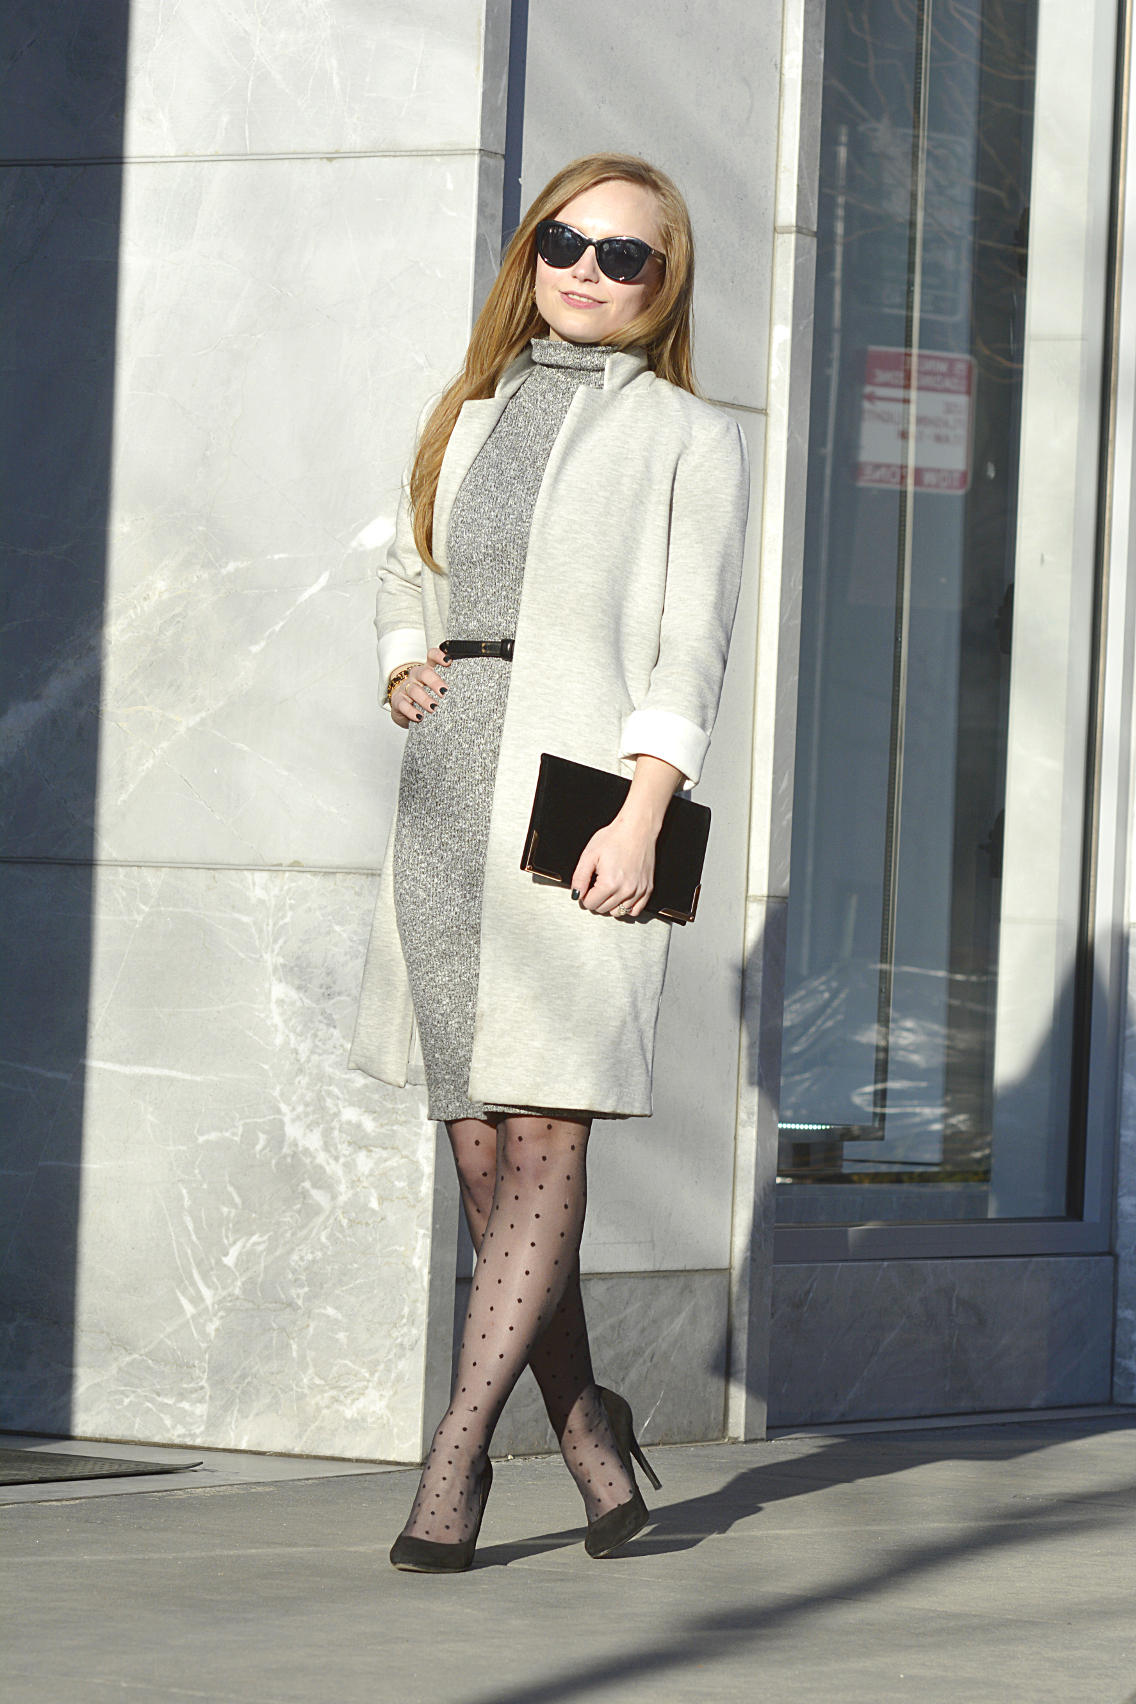 Gray Tom Ford Outfit 7